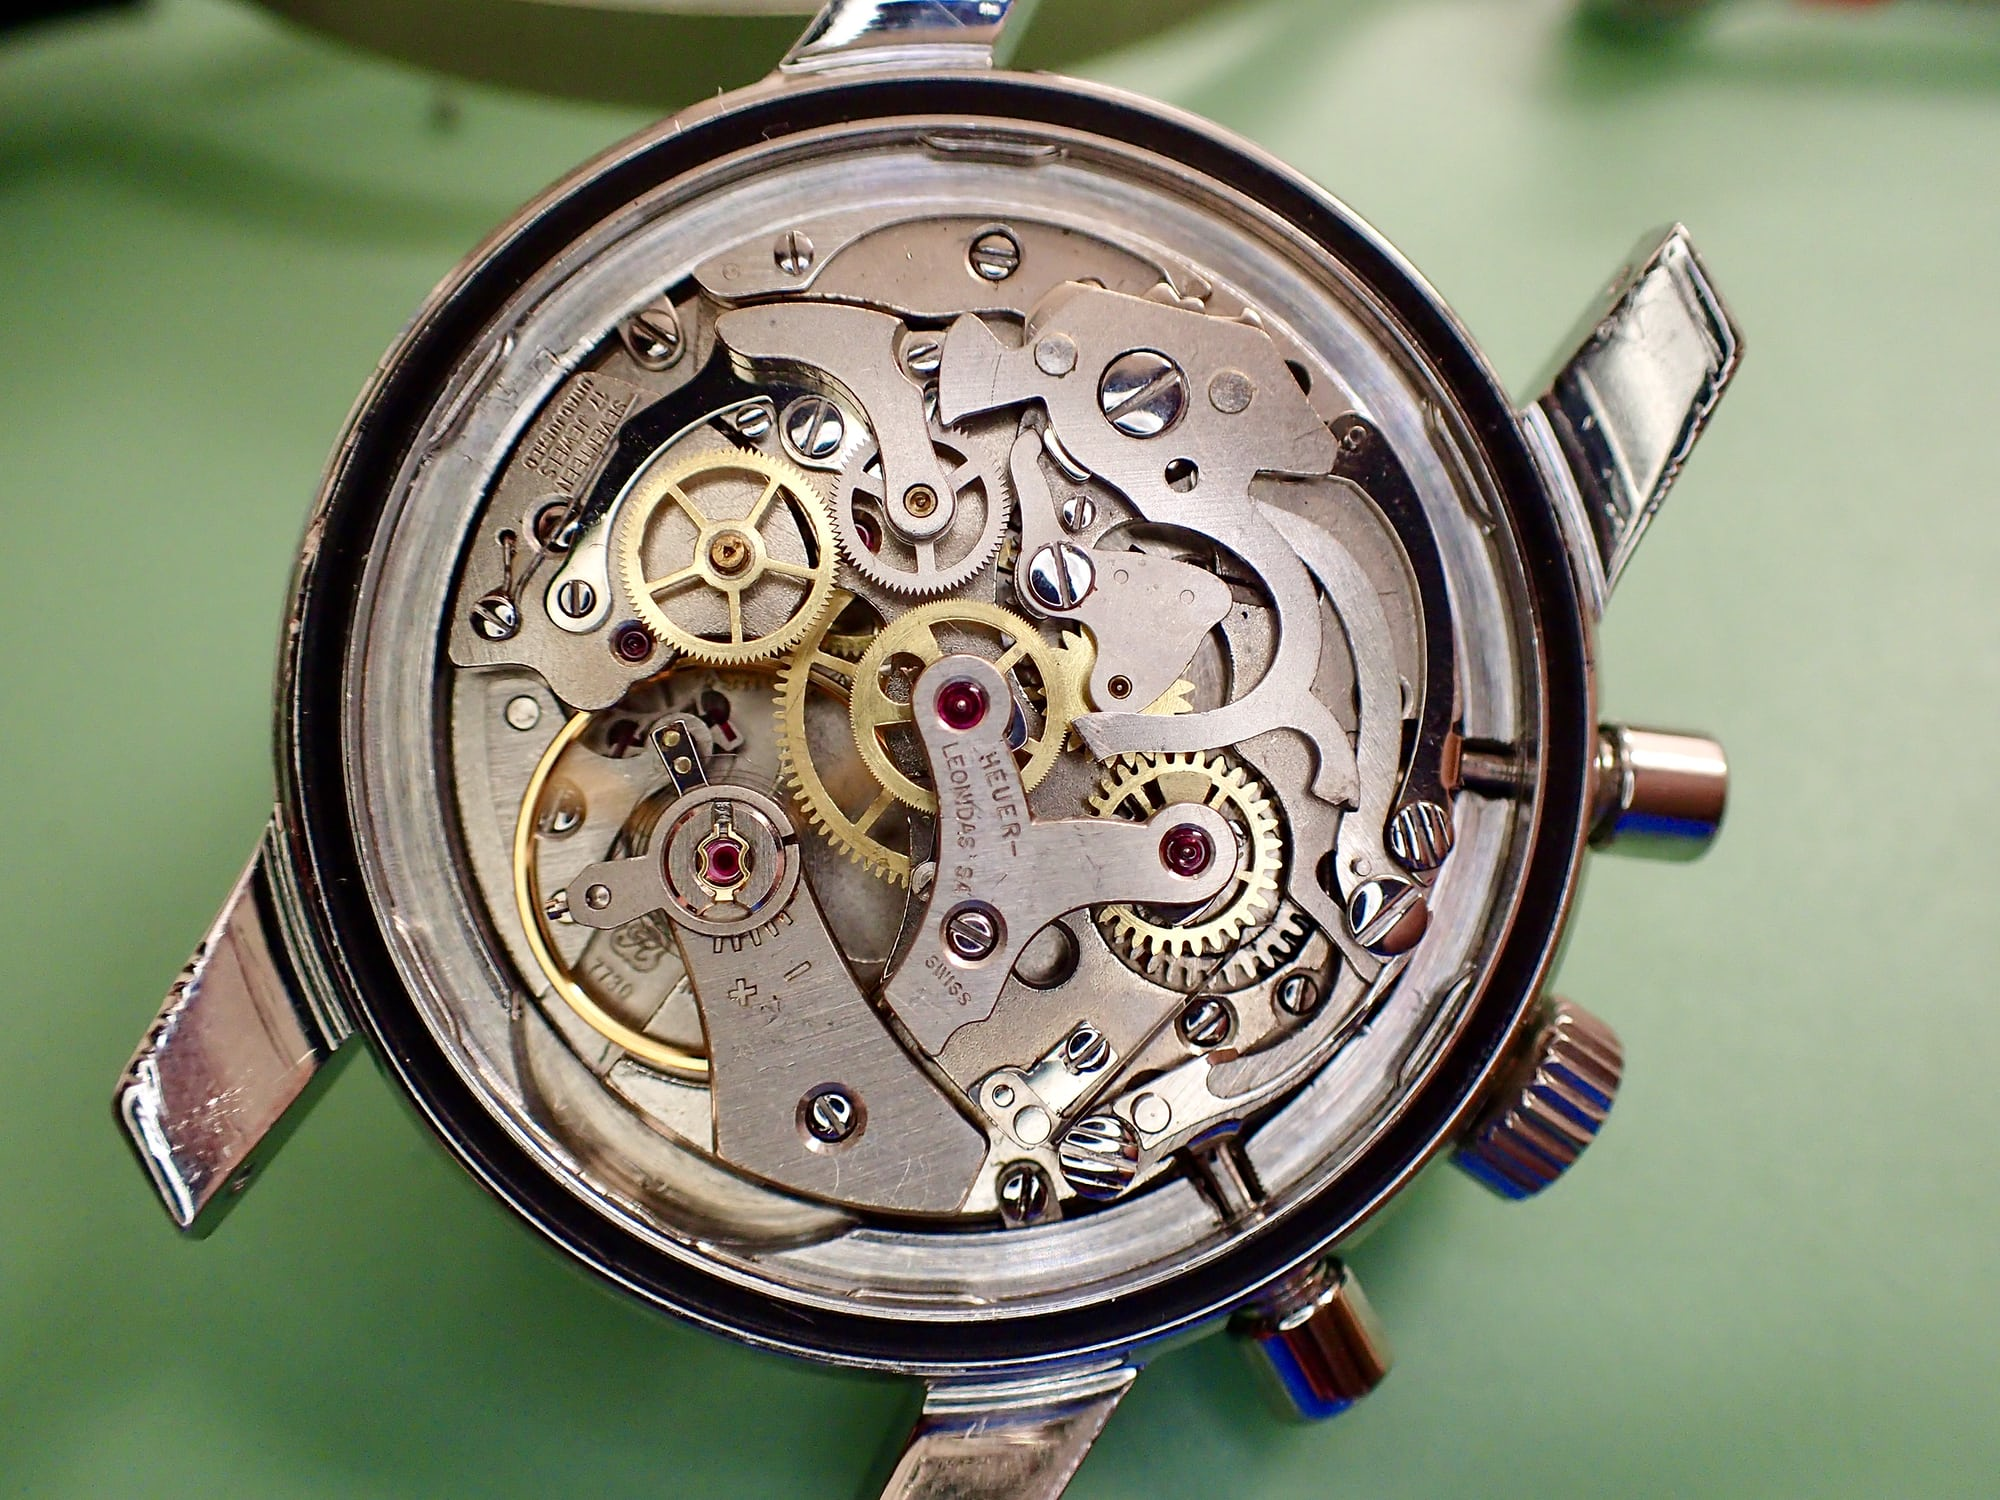 Heuer Skipper 7764 compressor valjoux 7730 Bring a Loupe: A Tudor Submariner 76100, An Oversized Longines Calatrava 5559, A Heuer Skipper 7764, And More Bring a Loupe: A Tudor Submariner 76100, An Oversized Longines Calatrava 5559, A Heuer Skipper 7764, And More fullsizeoutput 8f00